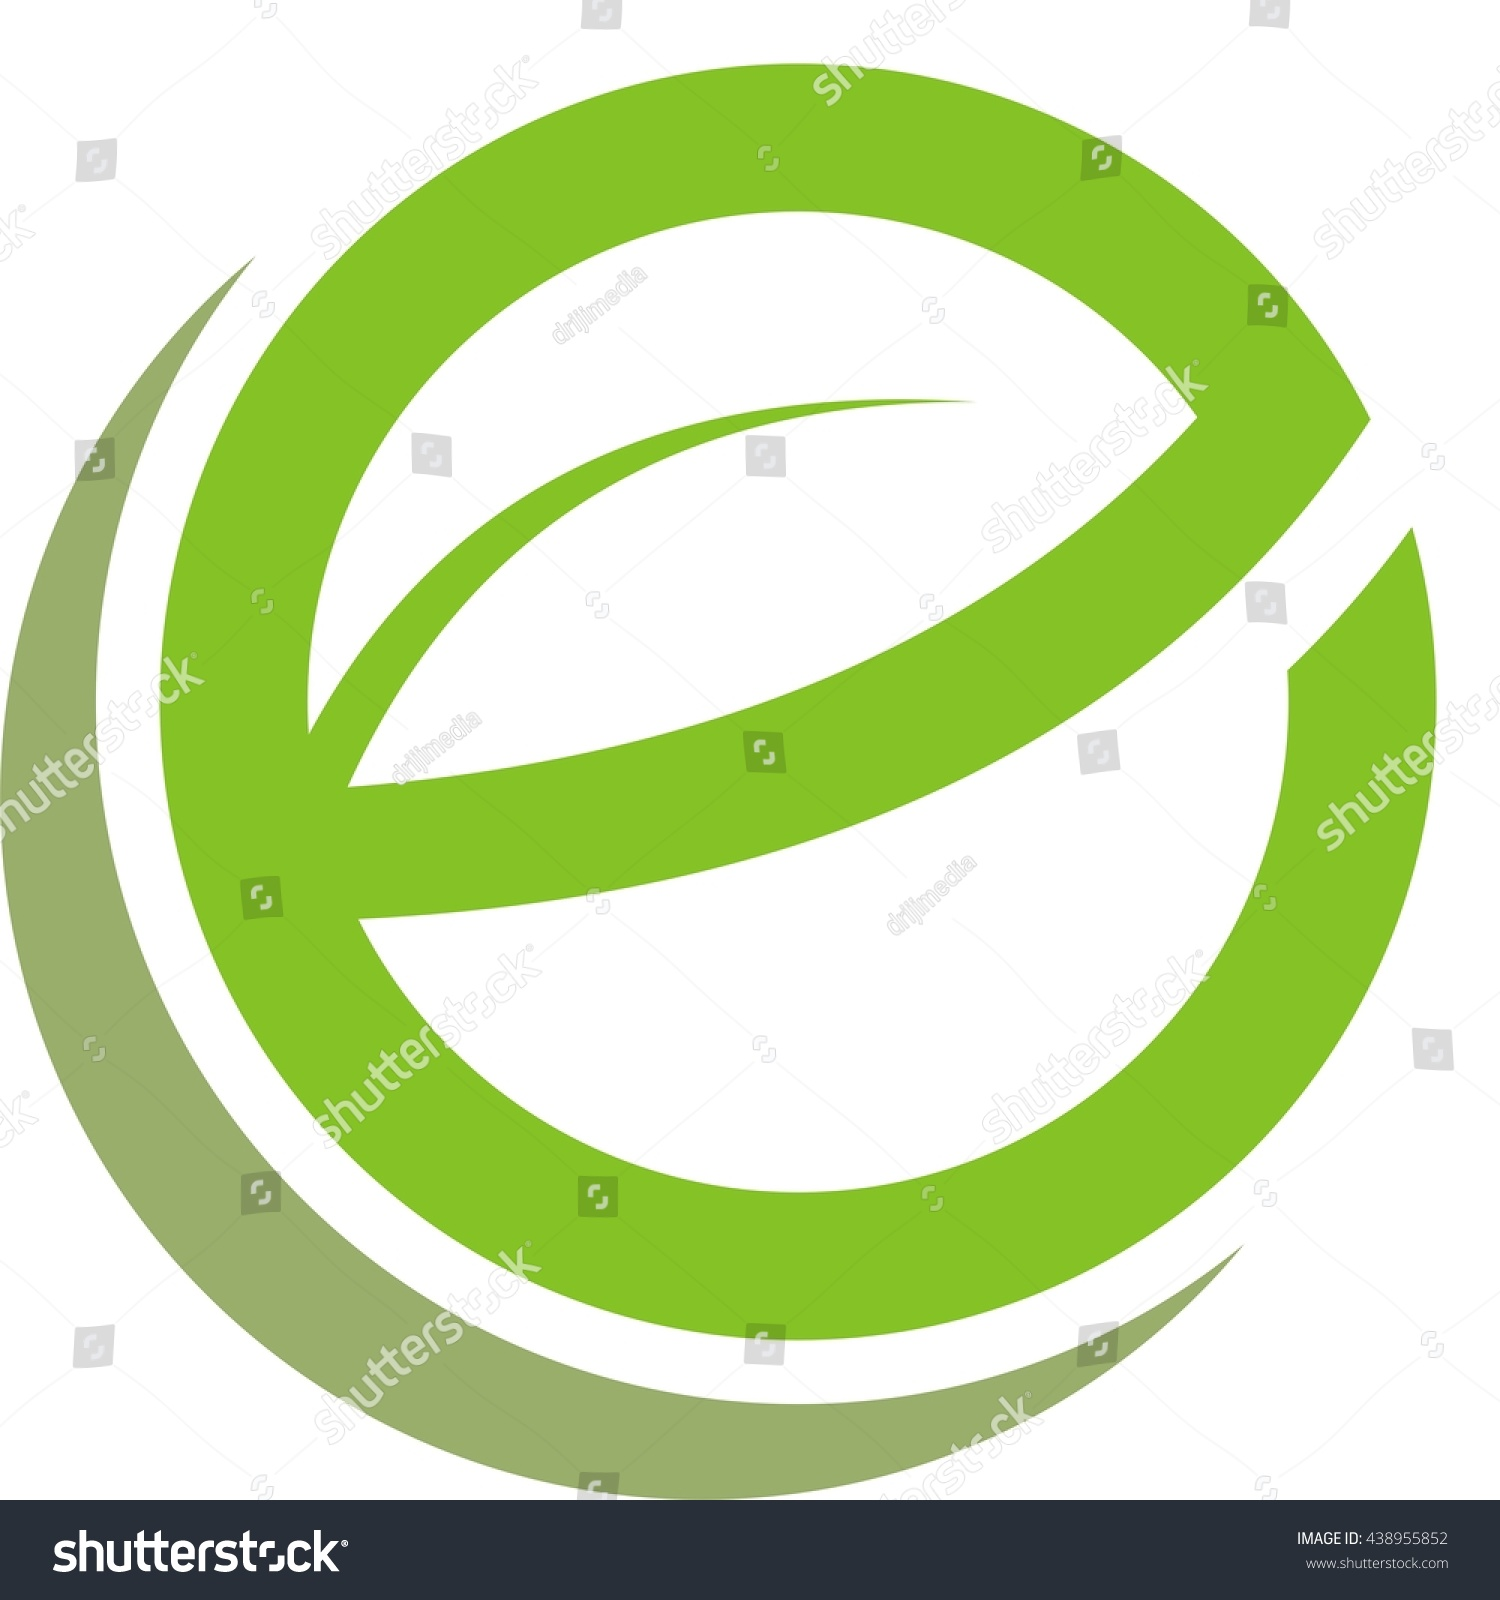 Leave letter e circle logo design stock vector 438955852 shutterstock leave letter e in circle logo design thecheapjerseys Image collections